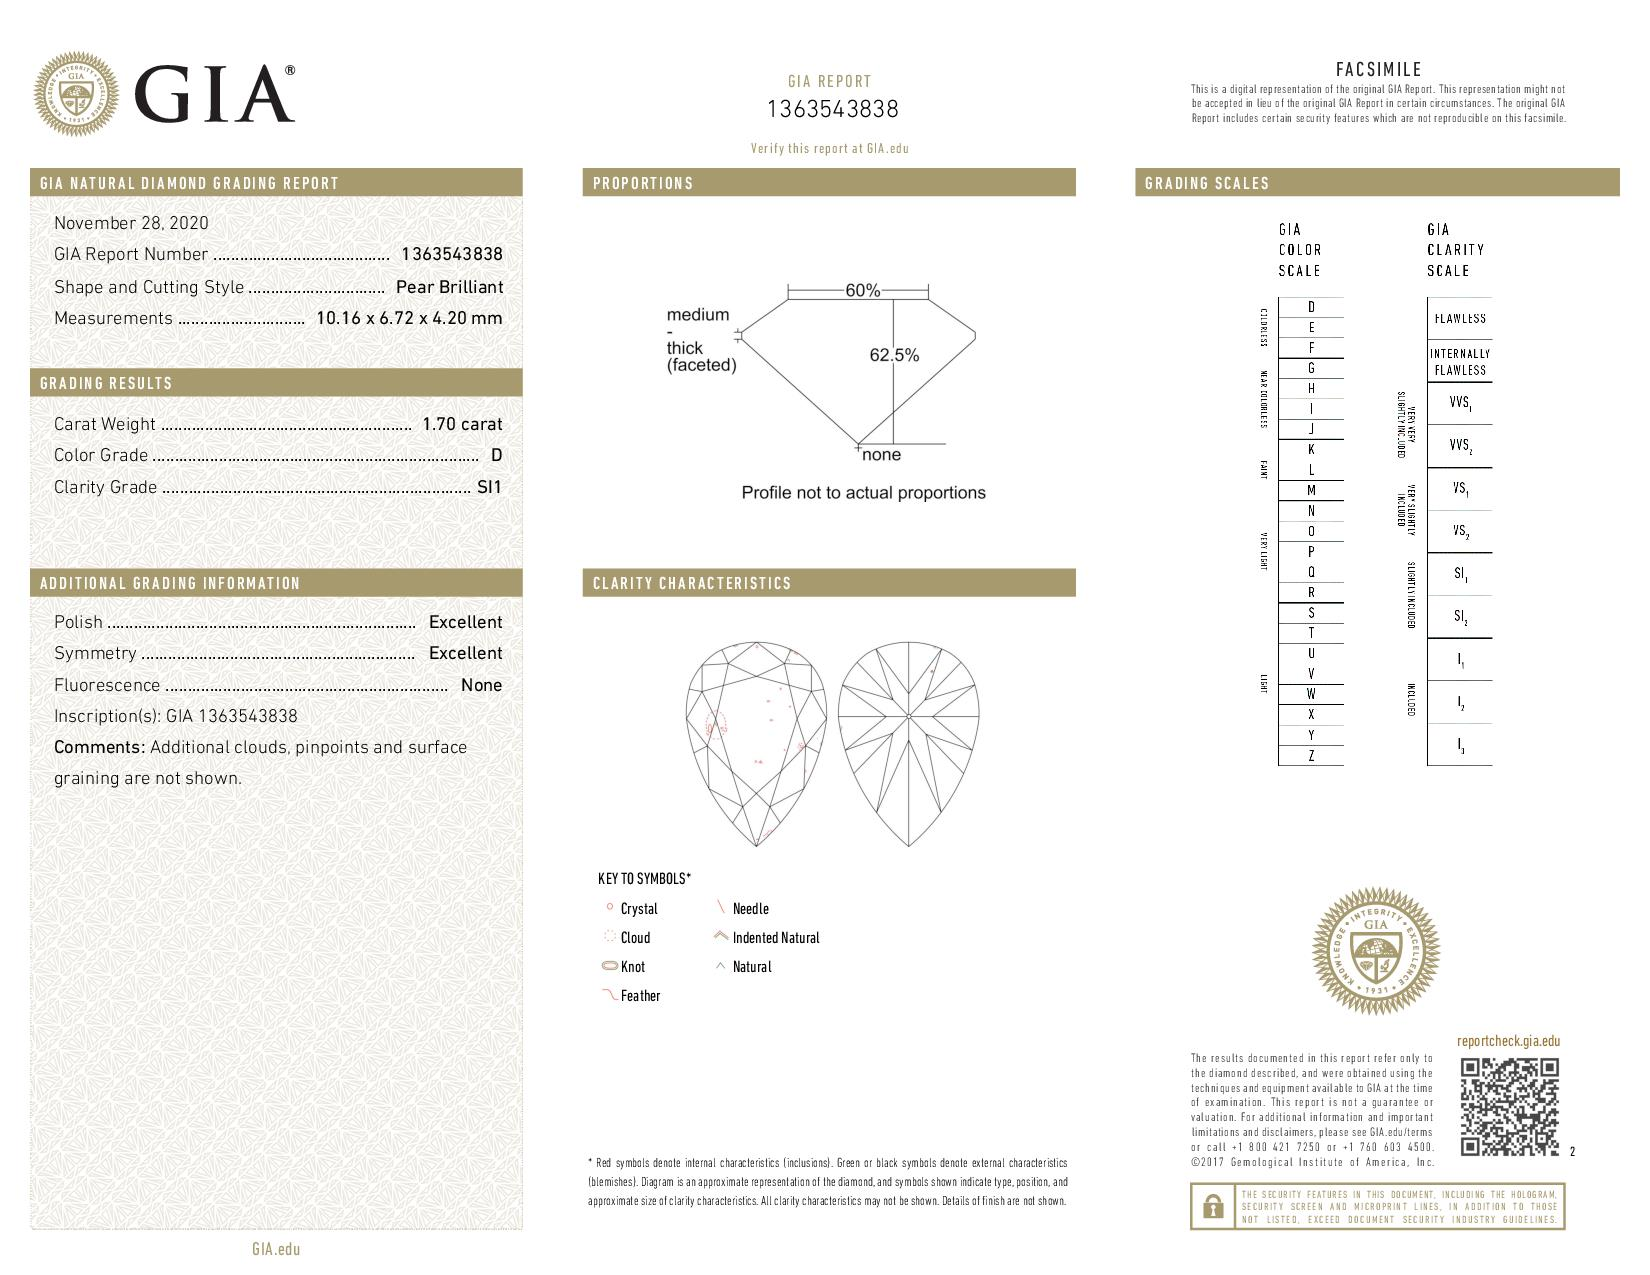 This is a 1.70 carat pear shape, D color, SI1 clarity natural diamond accompanied by a GIA grading report.